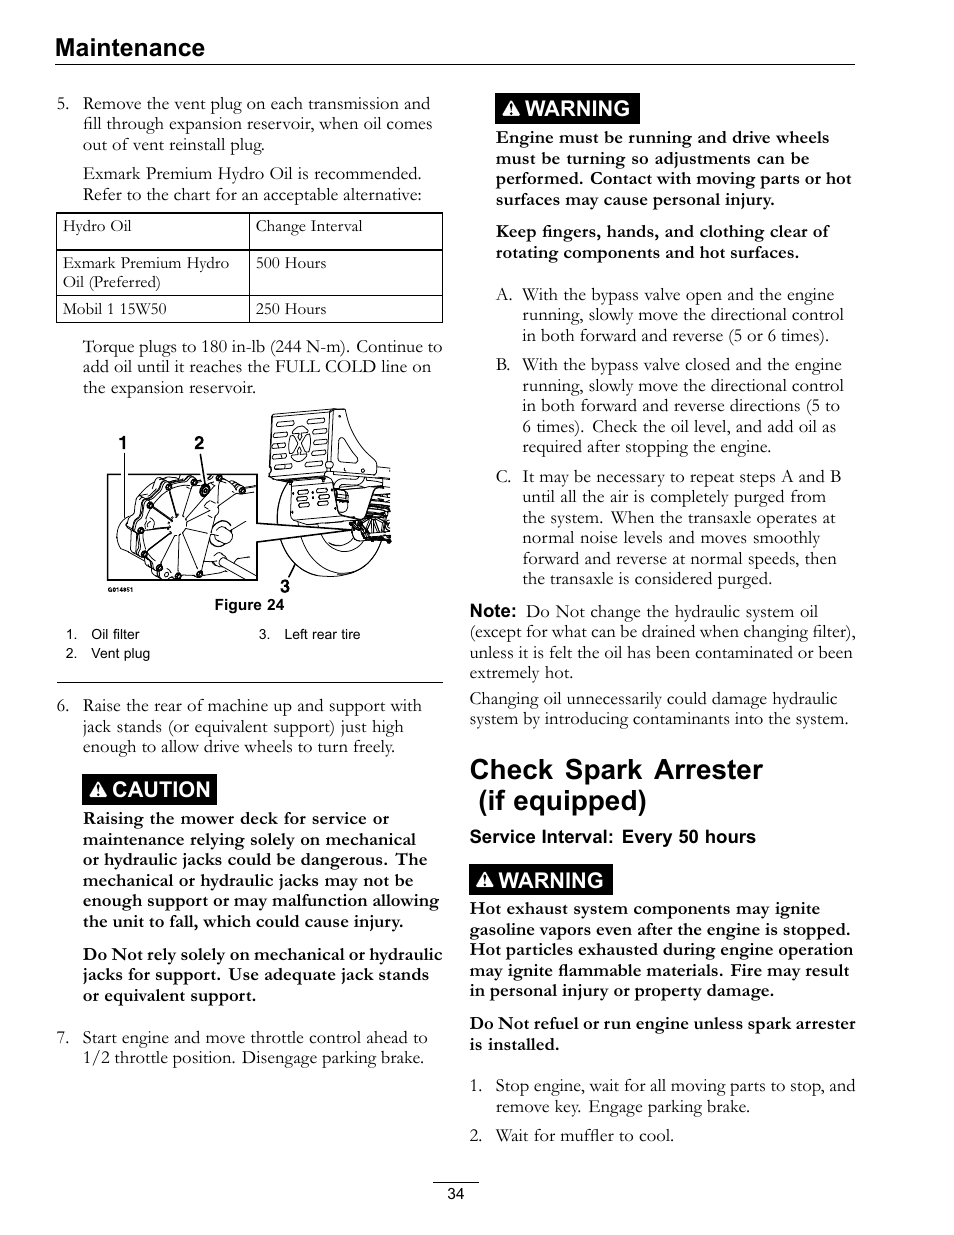 Check spark arrester (if equipped), Maintenance   Exmark